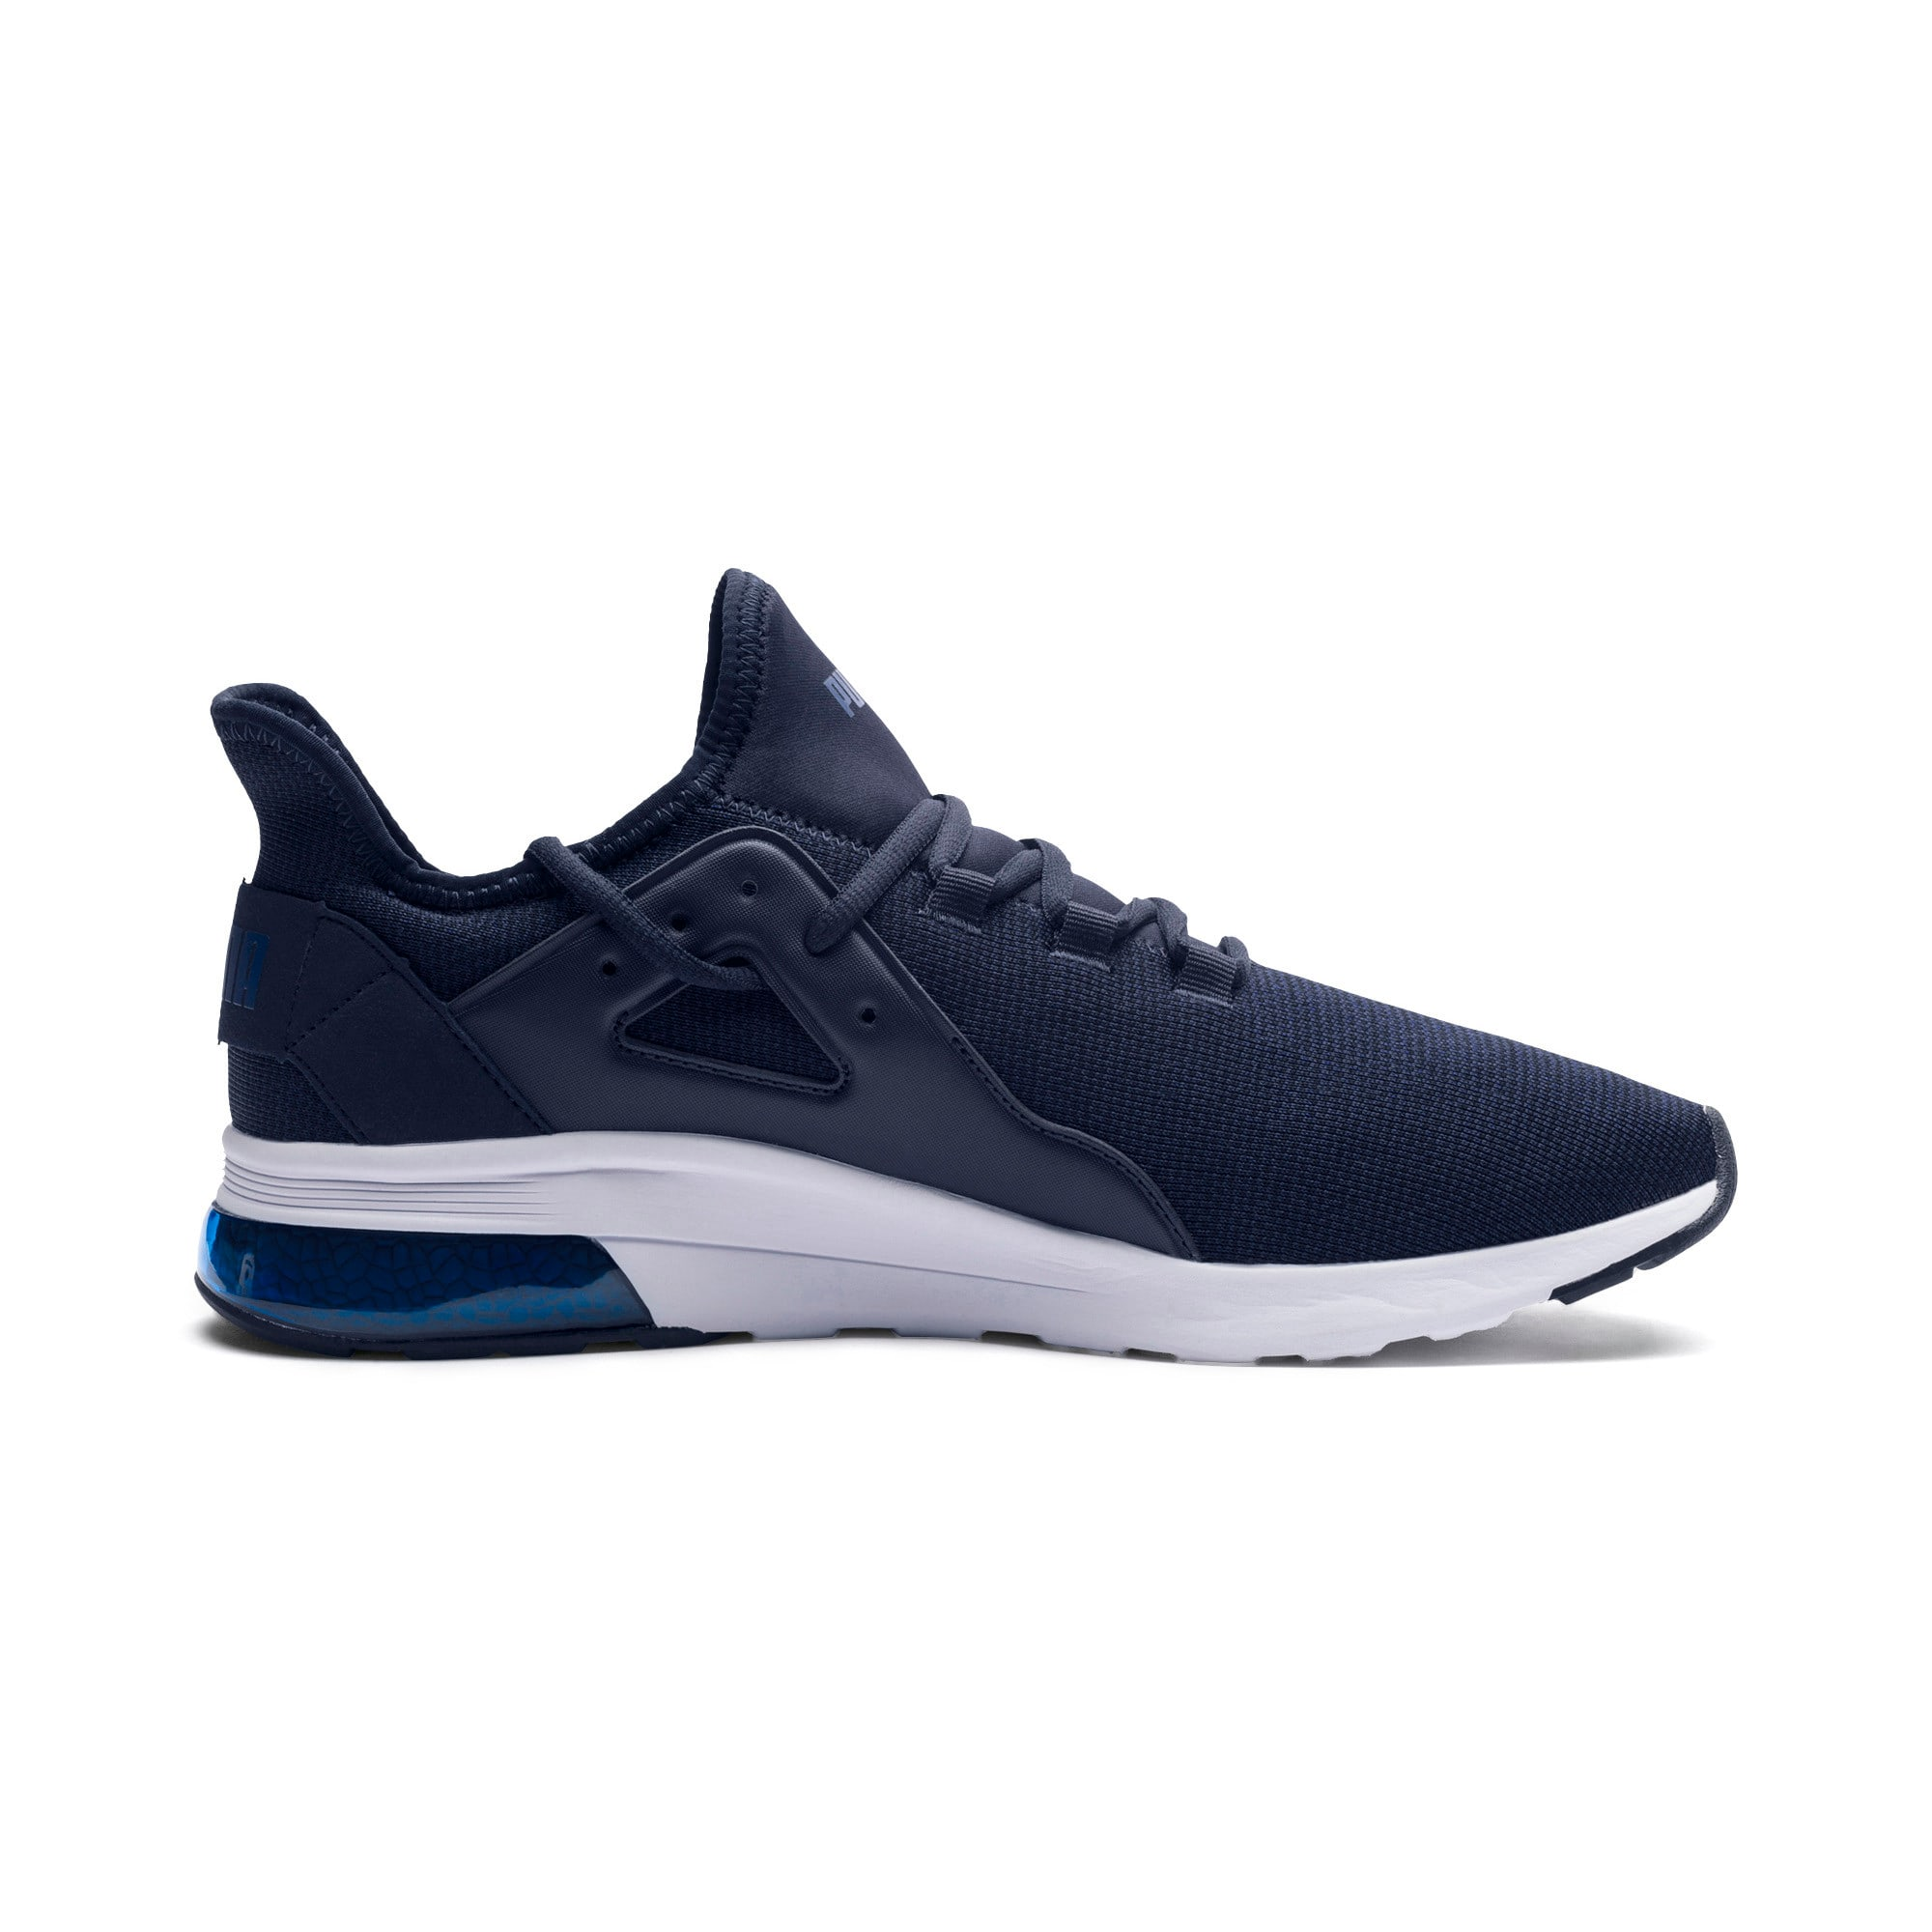 Thumbnail 5 of Electron Street Knit Trainers, Peacoat-Sodalite Blue, medium-IND